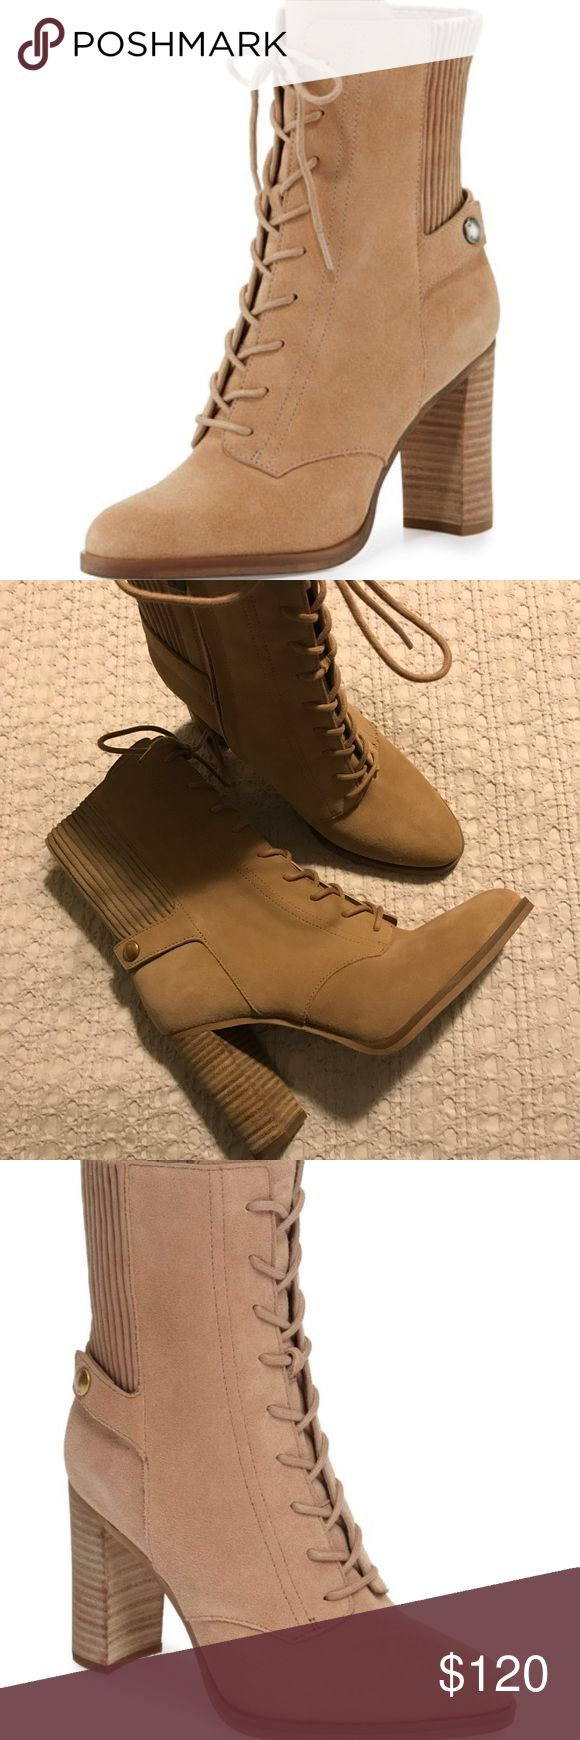 Michael Kors Suede Lace Up Bootie 7 Brand new, beautiful Genuine Suede heeled lace up booties. Size 7 but I wear a 7.5 and they also fit. I fell in love with these but just have so too many boots. Never got the chance to wear them. Open to offers MICHAEL Michael Kors Shoes Heeled Boots